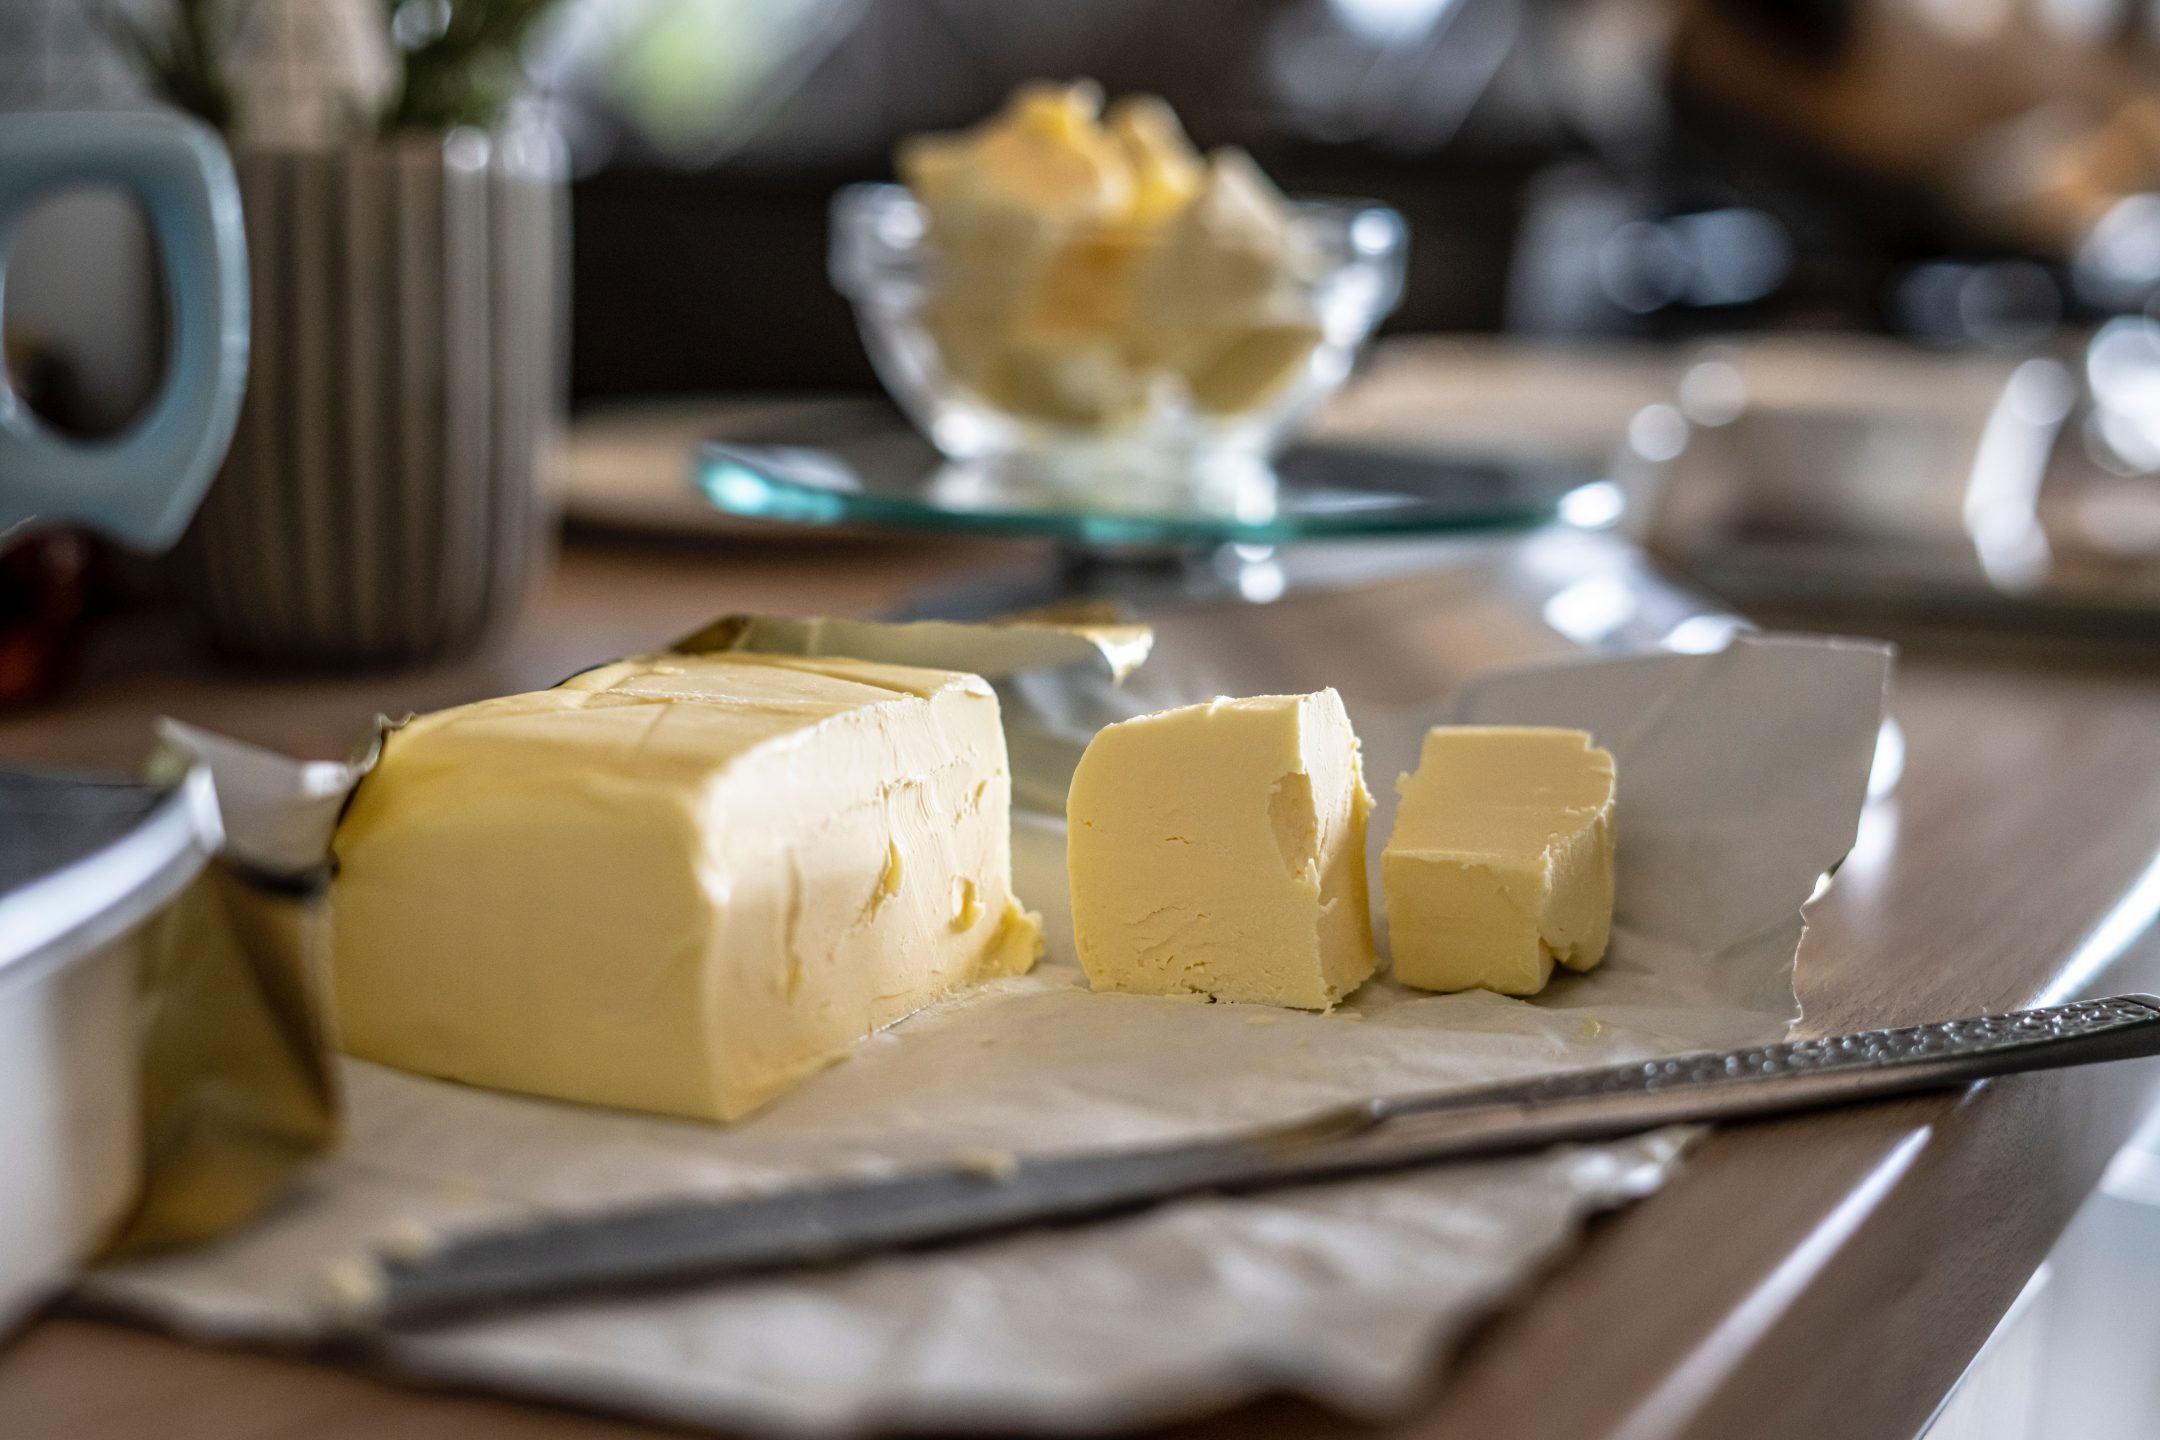 A close-up image of cubed grass-fed butter in its wrappings beside a butterknife on a table